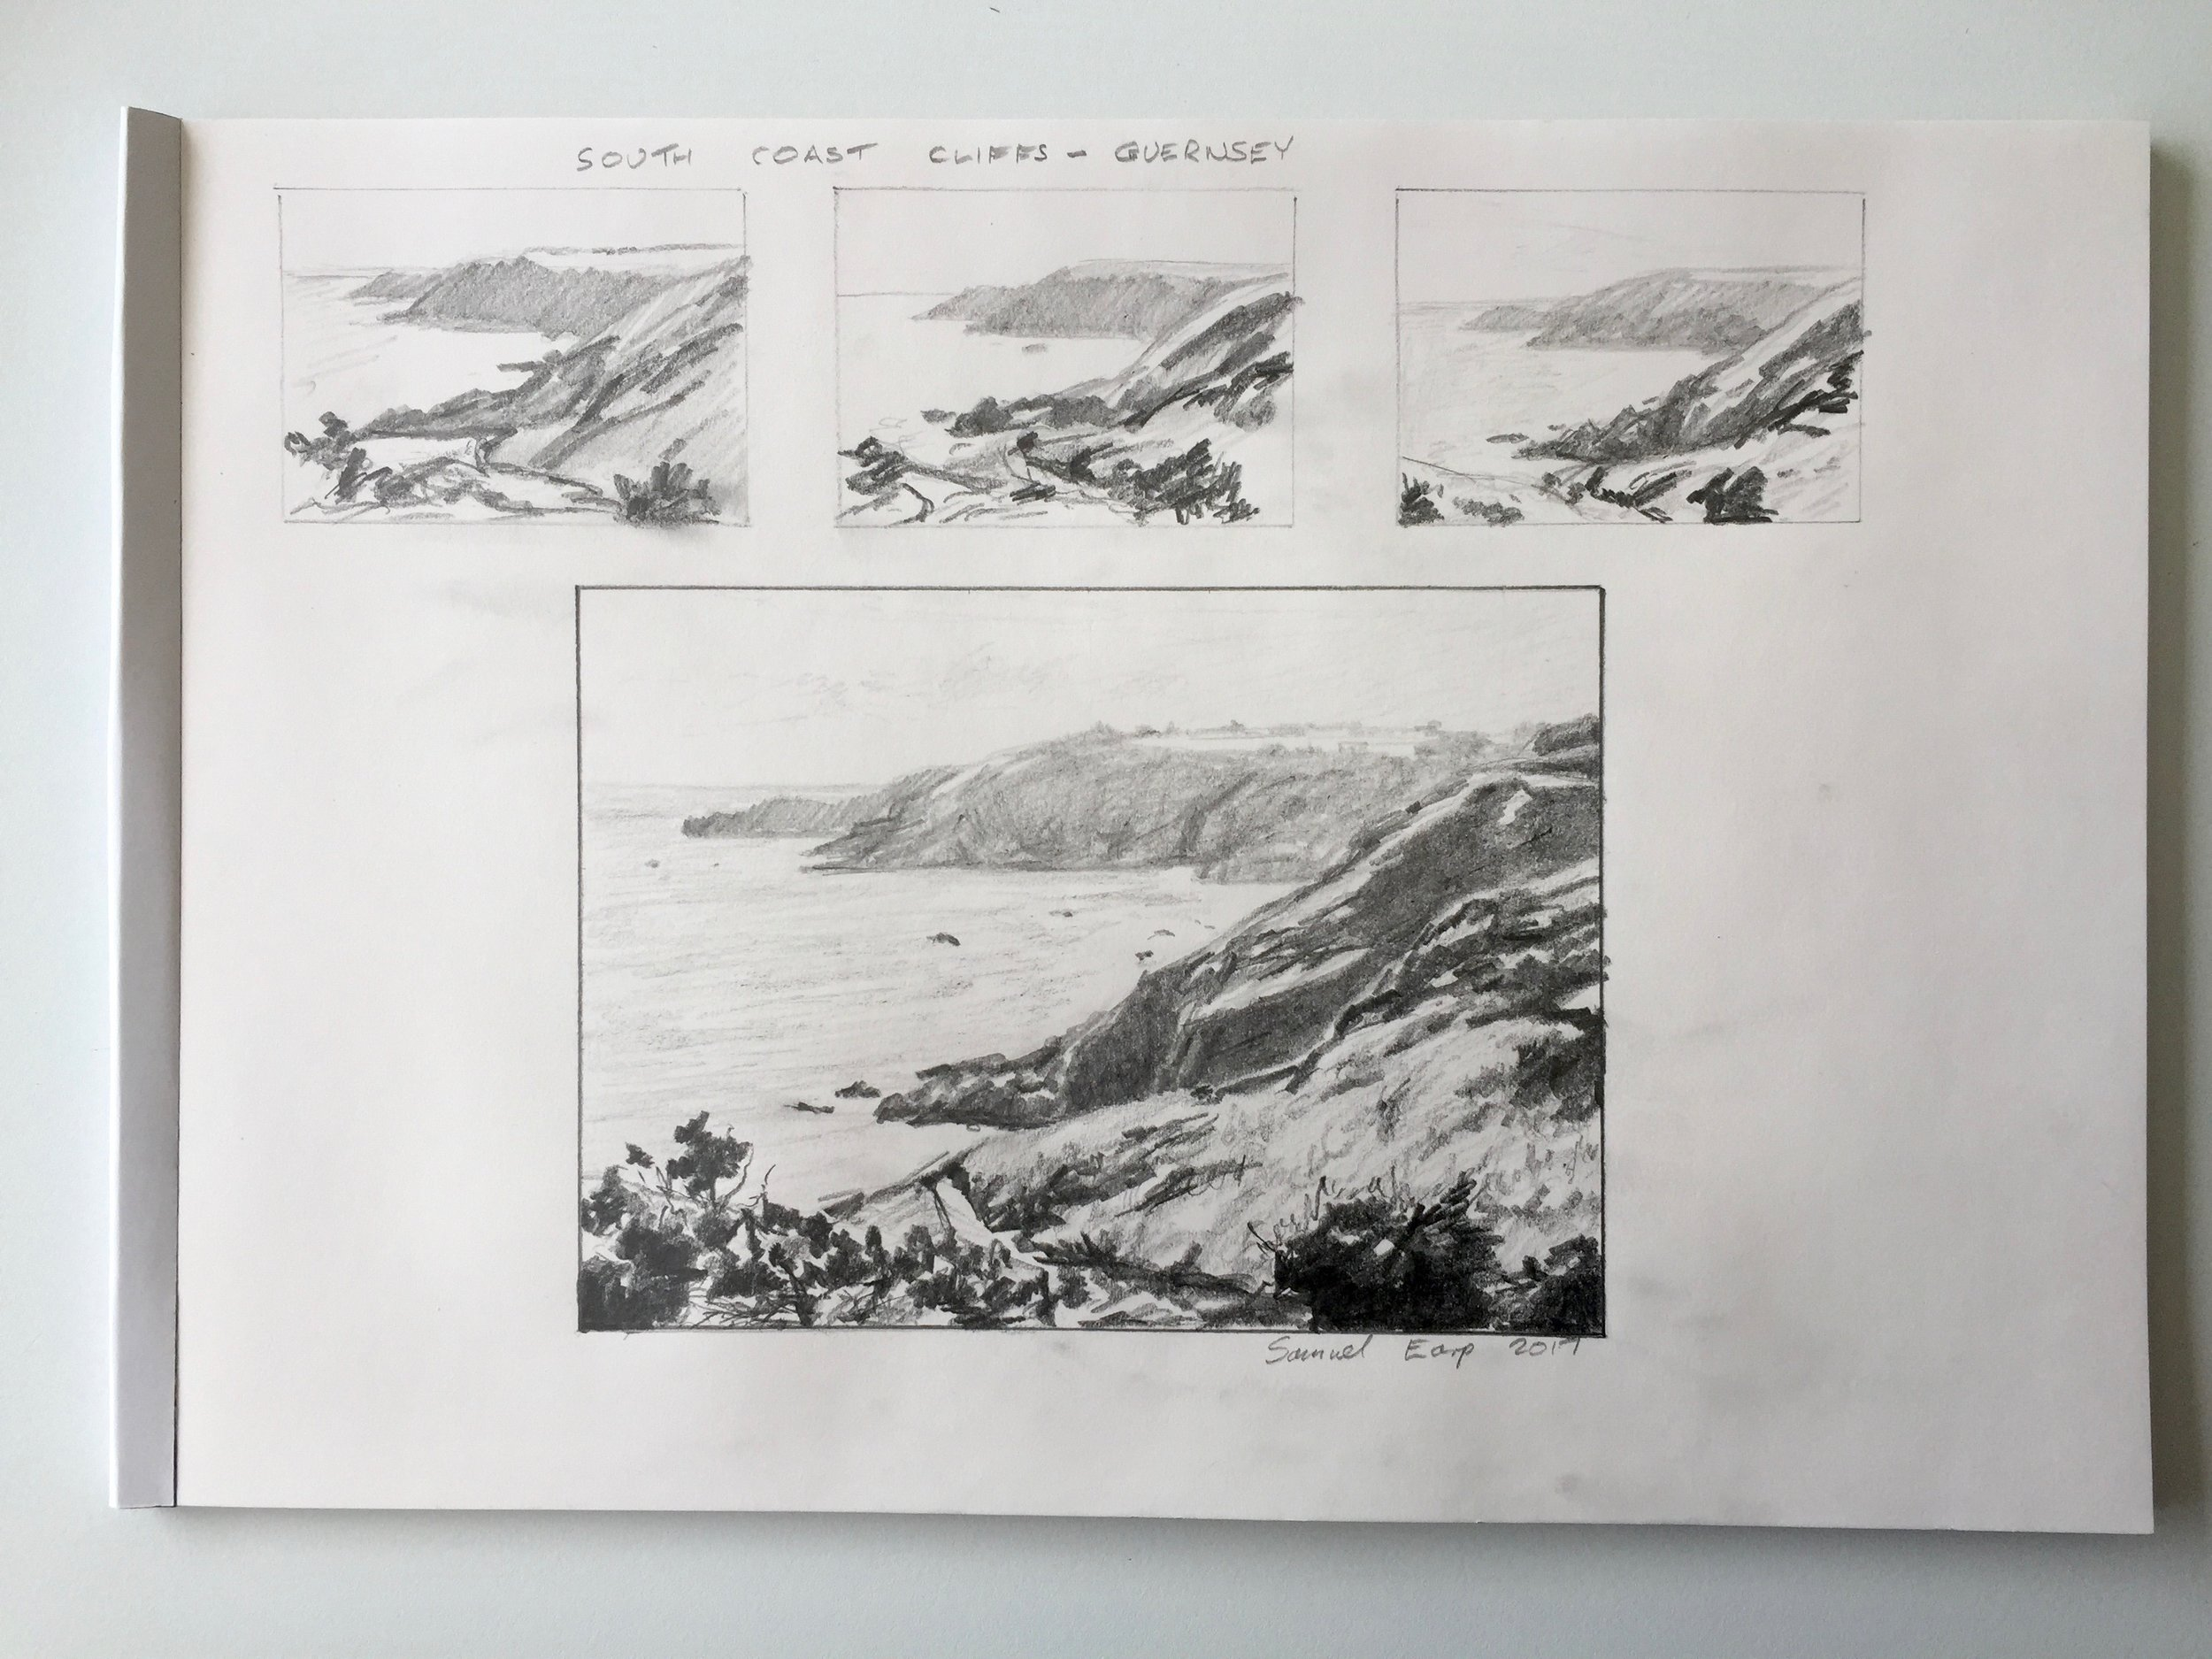 Pencil Sketch and thumbnail sketches of the south coast cliffs of Guernsey.